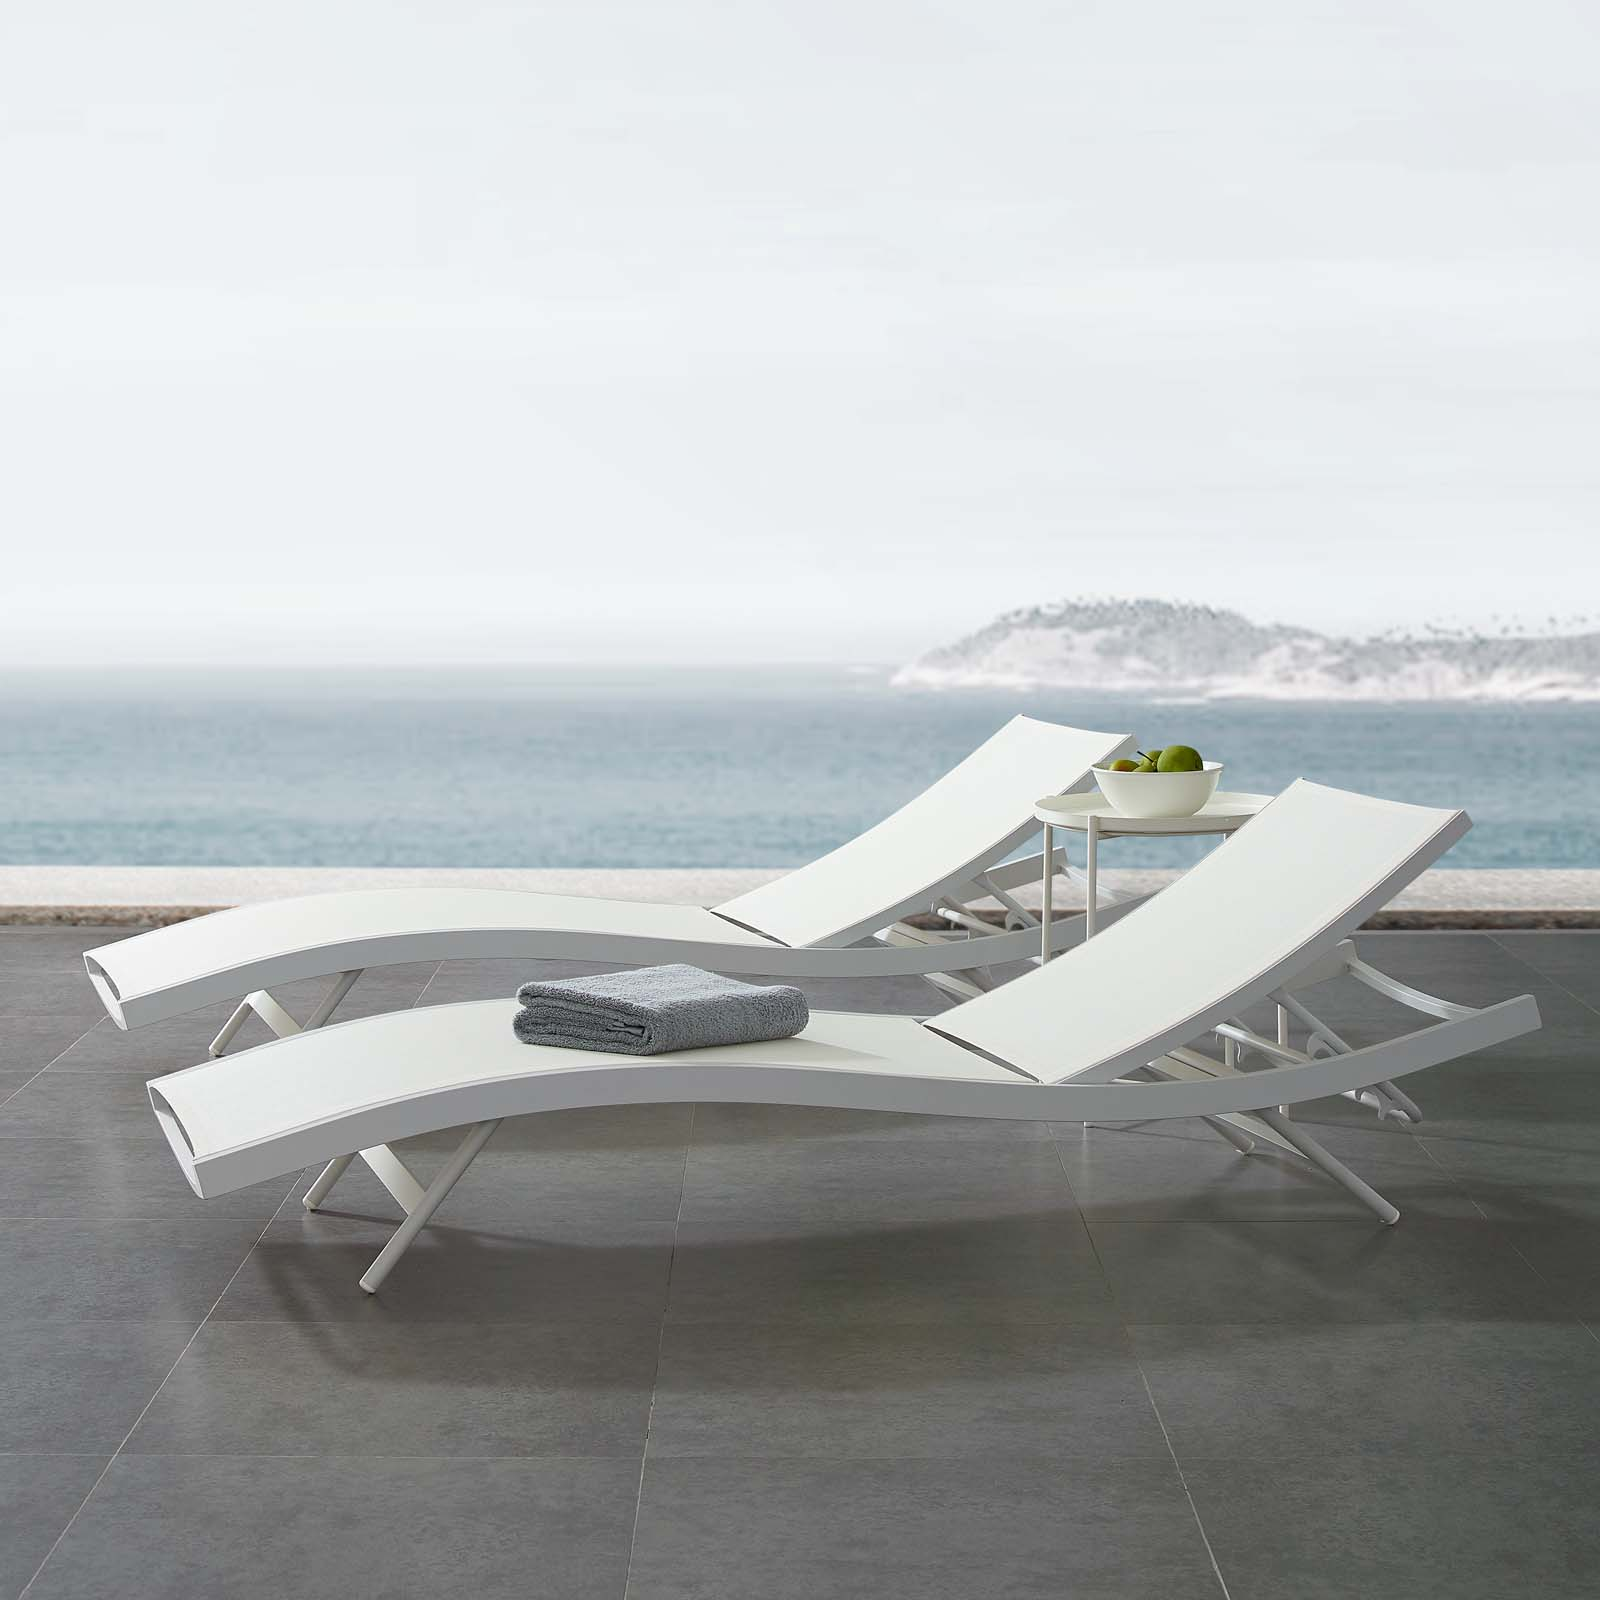 Patio Mesh Chaise Lounge Chair Previous Picture Next Eei 3300 Whi 7